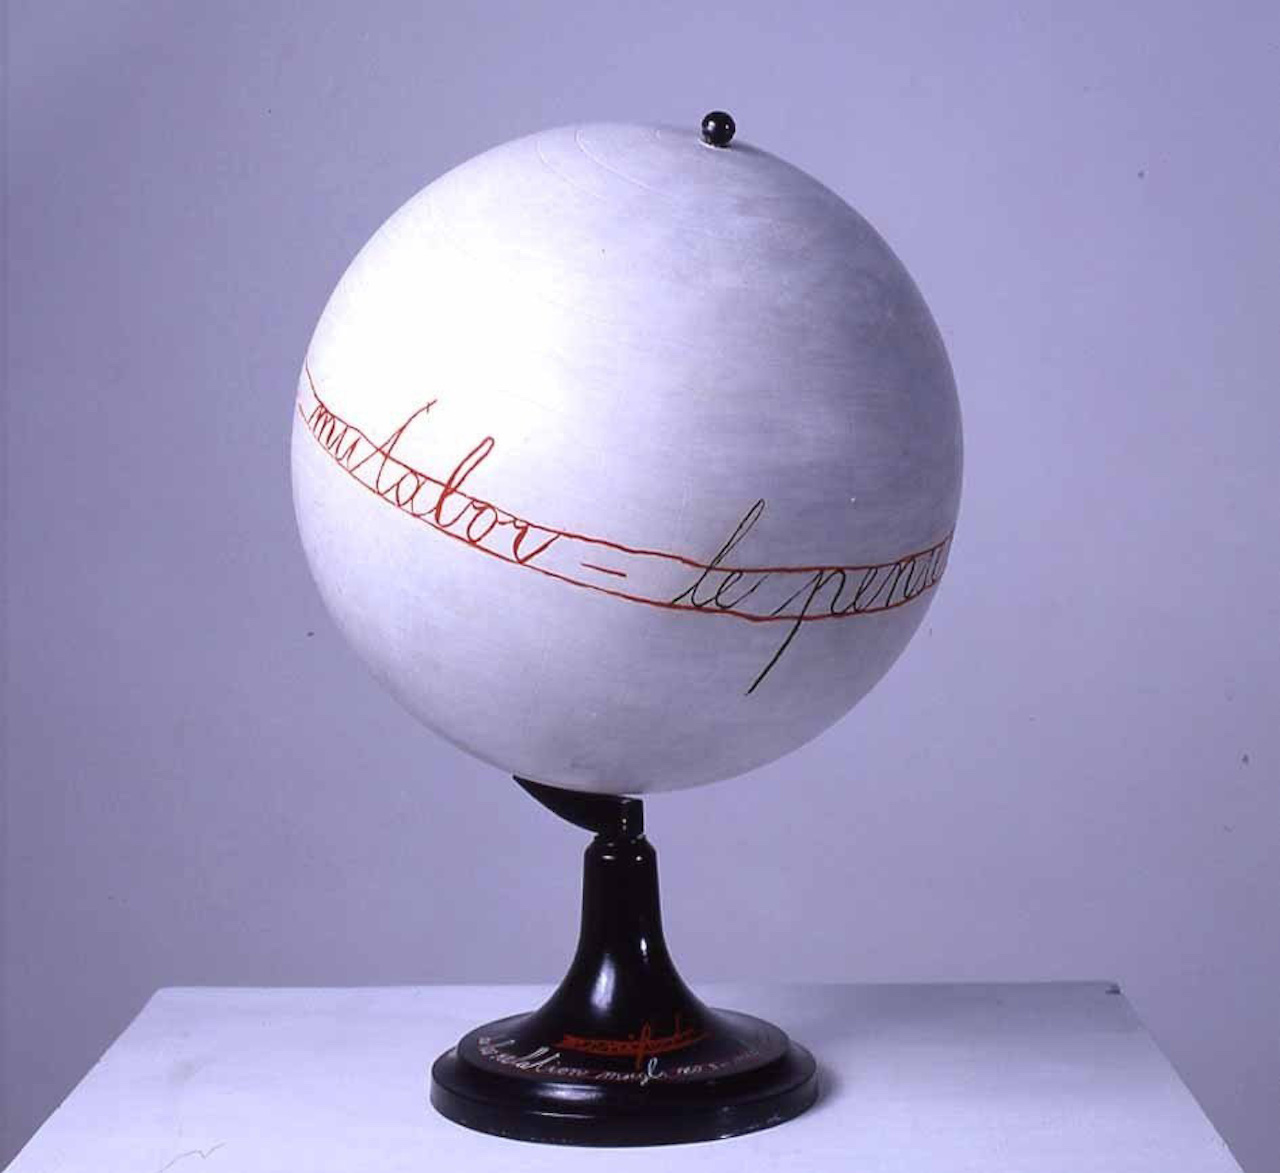 """Mangelos (Dimitrije Bašicevic), """"Manifest de la relation"""" (1976), synthetic polymer paint on globe made of plastic and metal"""